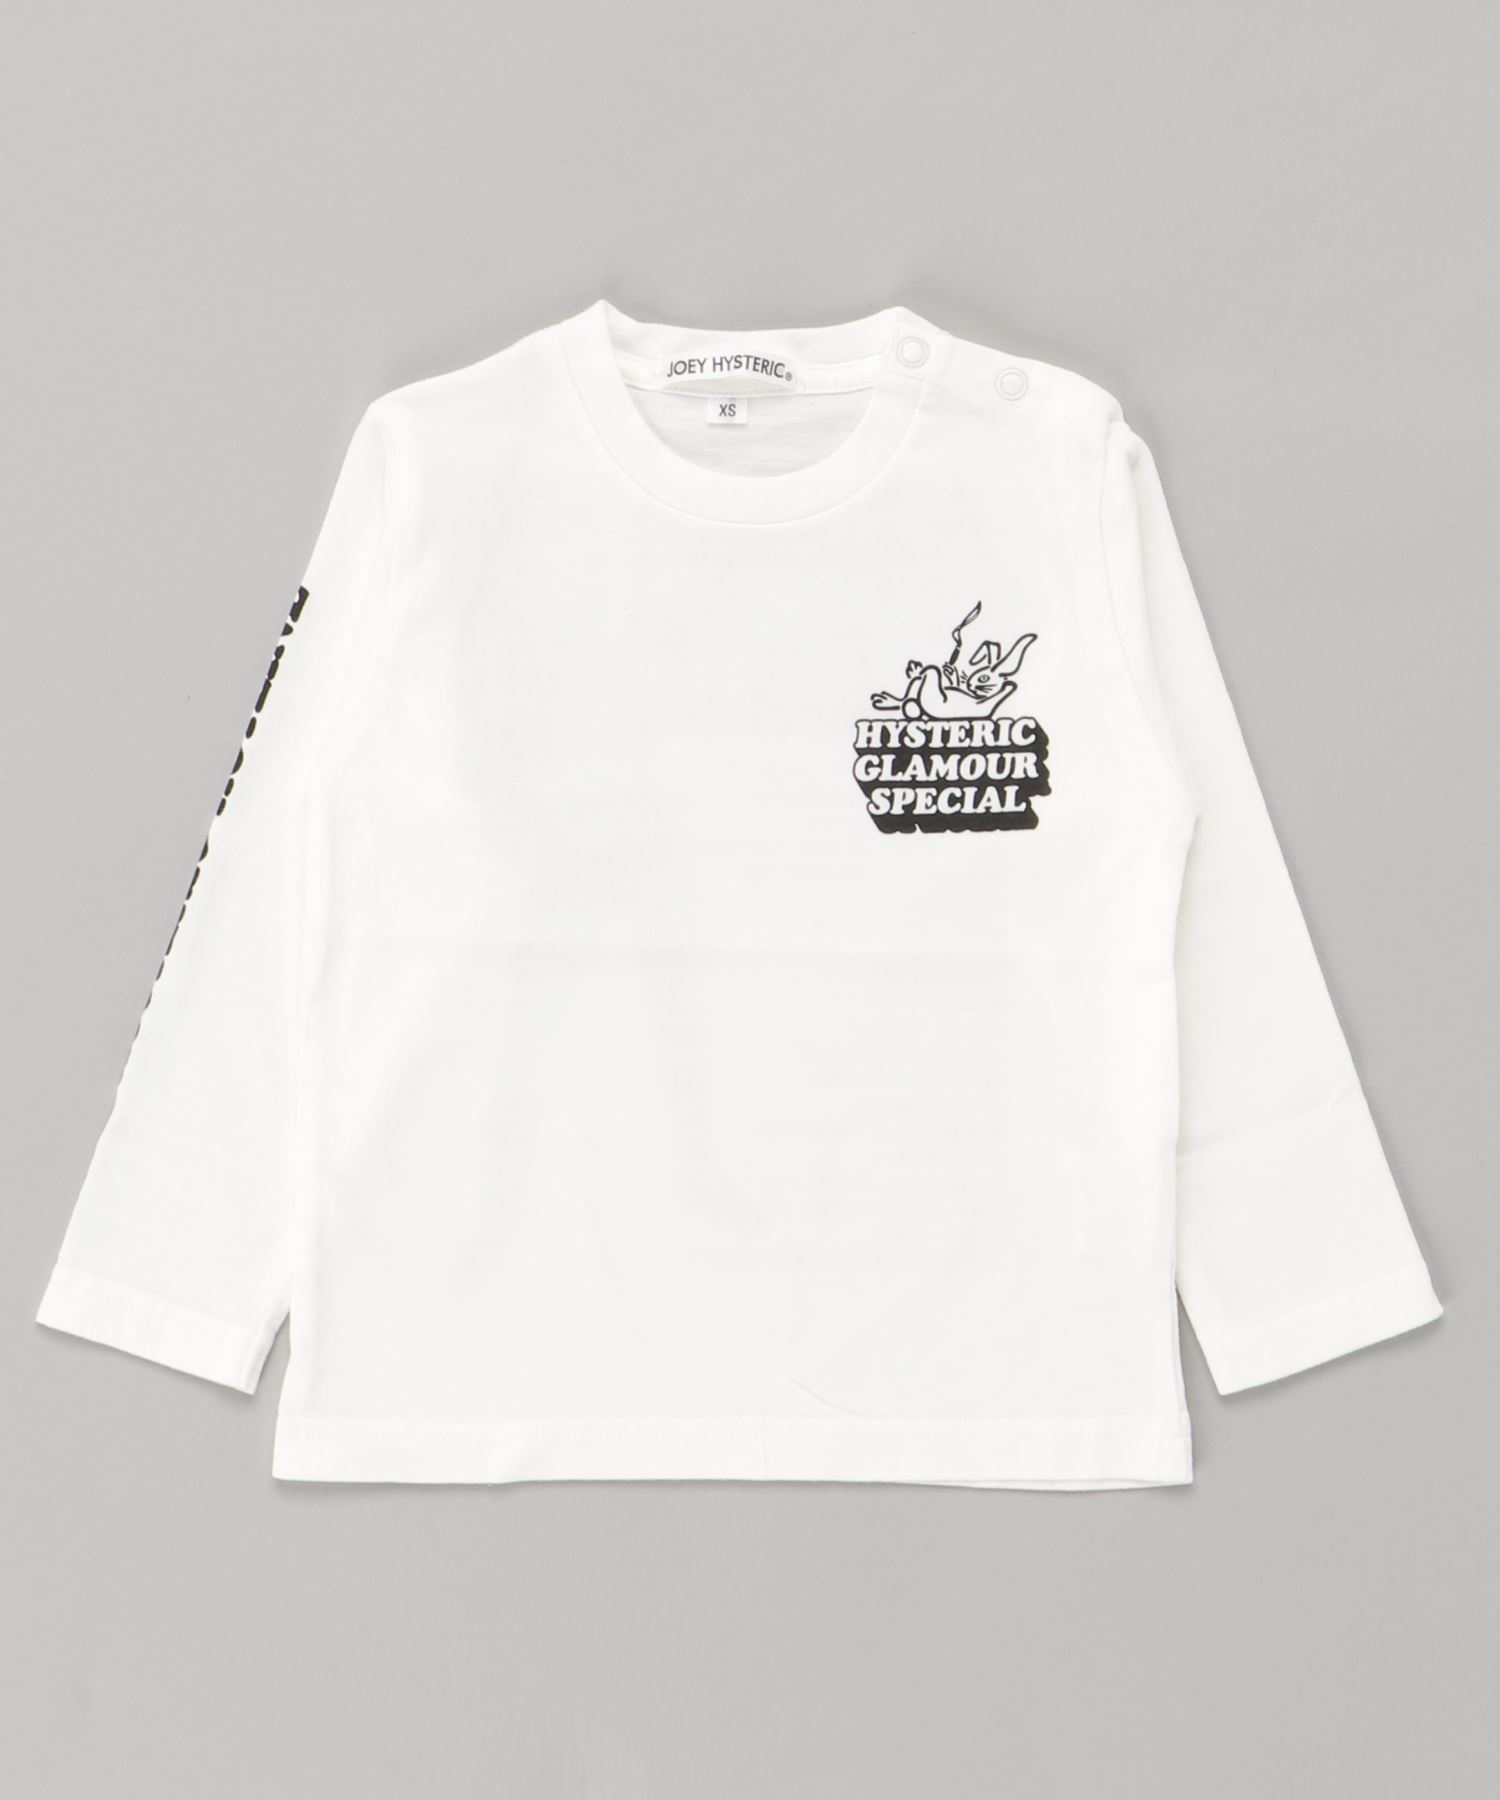 HYS SPECIAL Tシャツ【XS/S/M】